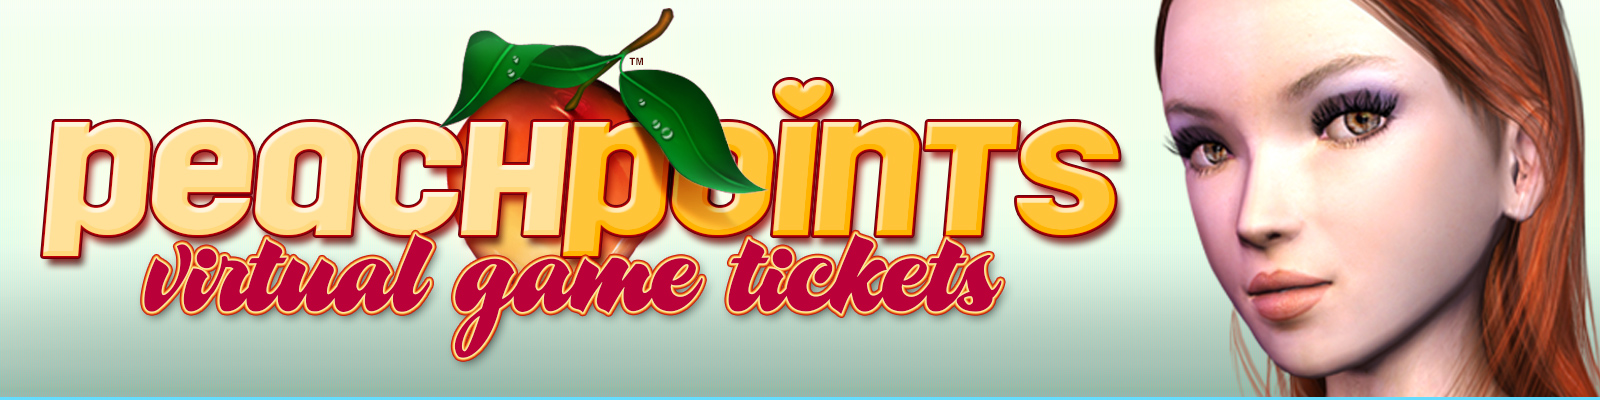 Peach Points : (15,000) Virtual Game Tickets